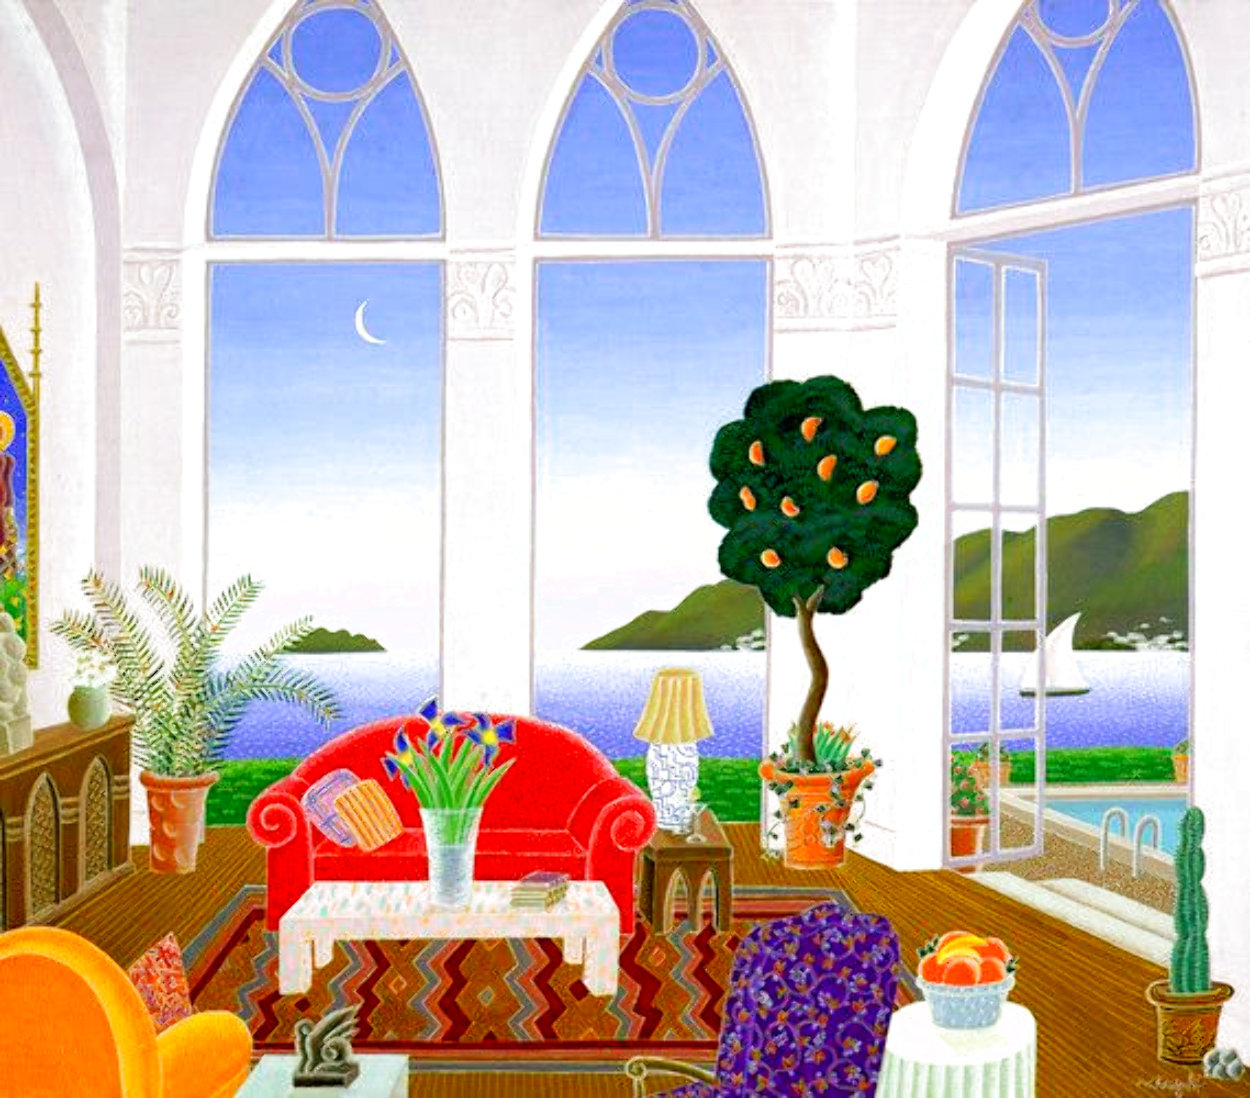 Red Couch 1989 Super Huge Limited Edition Print by Thomas Frederick McKnight